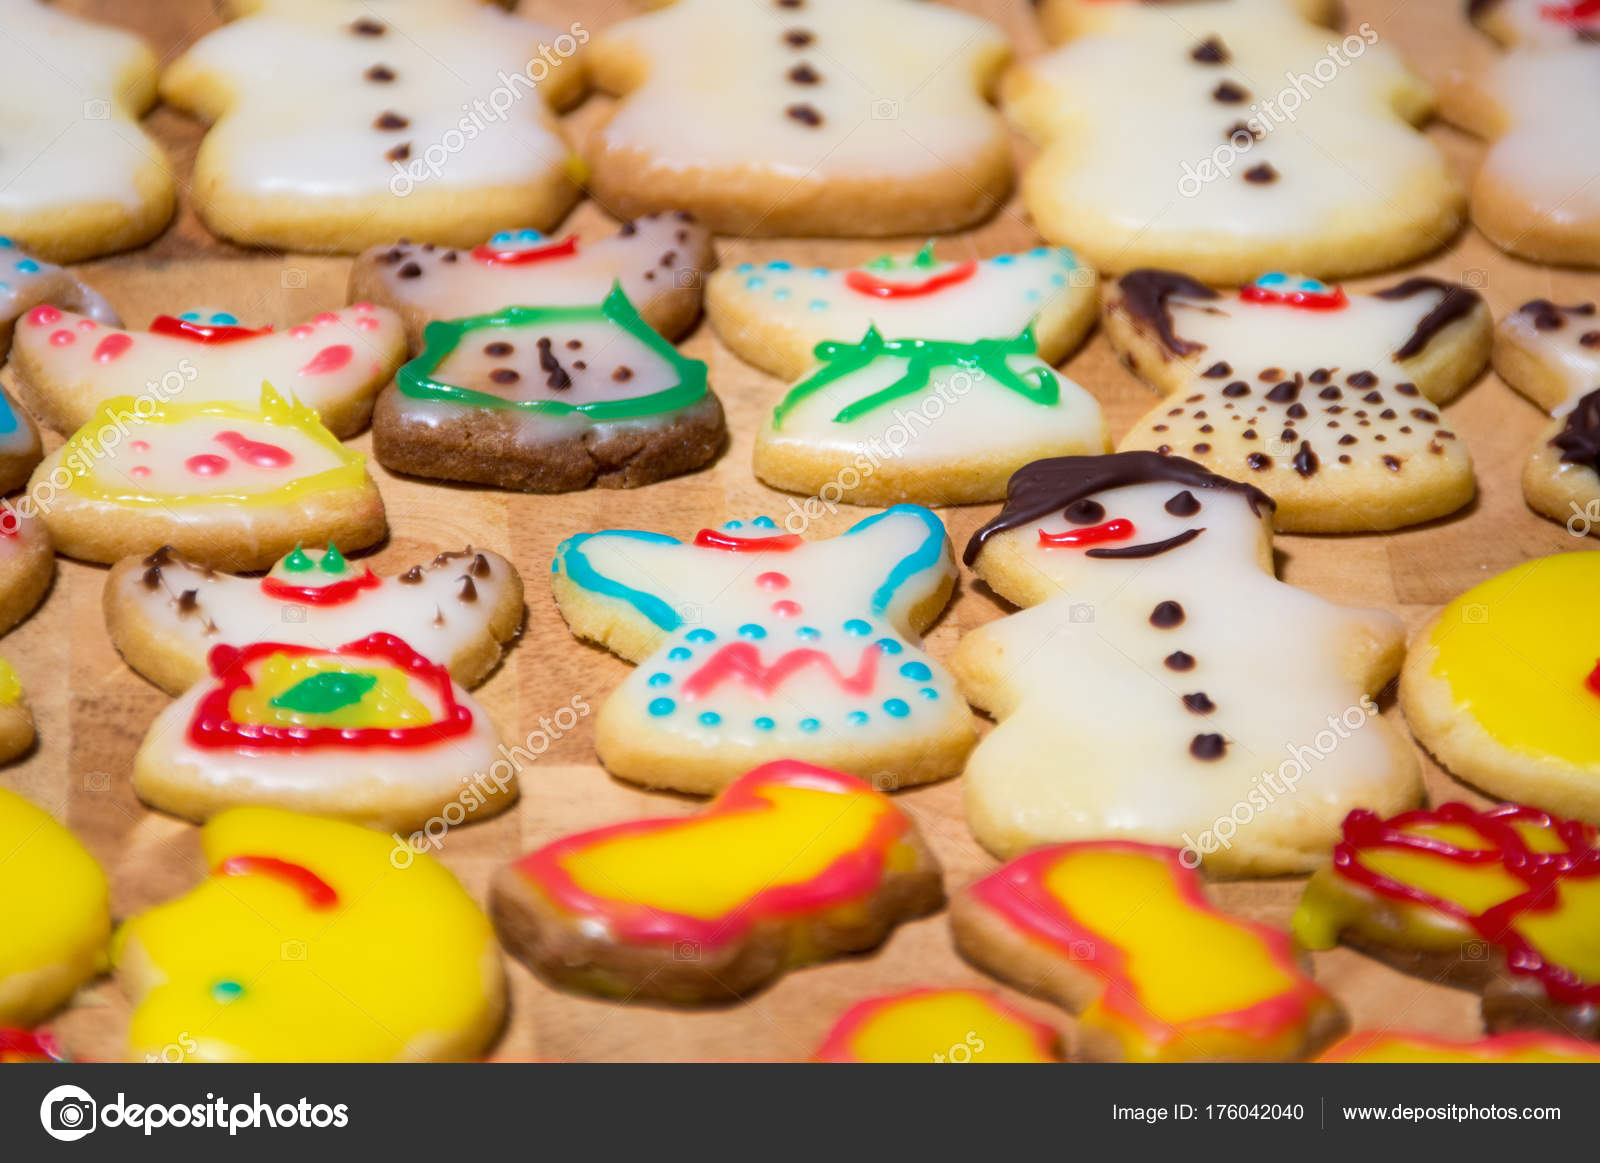 homemade christmas cookie with decoration stock photo - Homemade Christmas Cookies